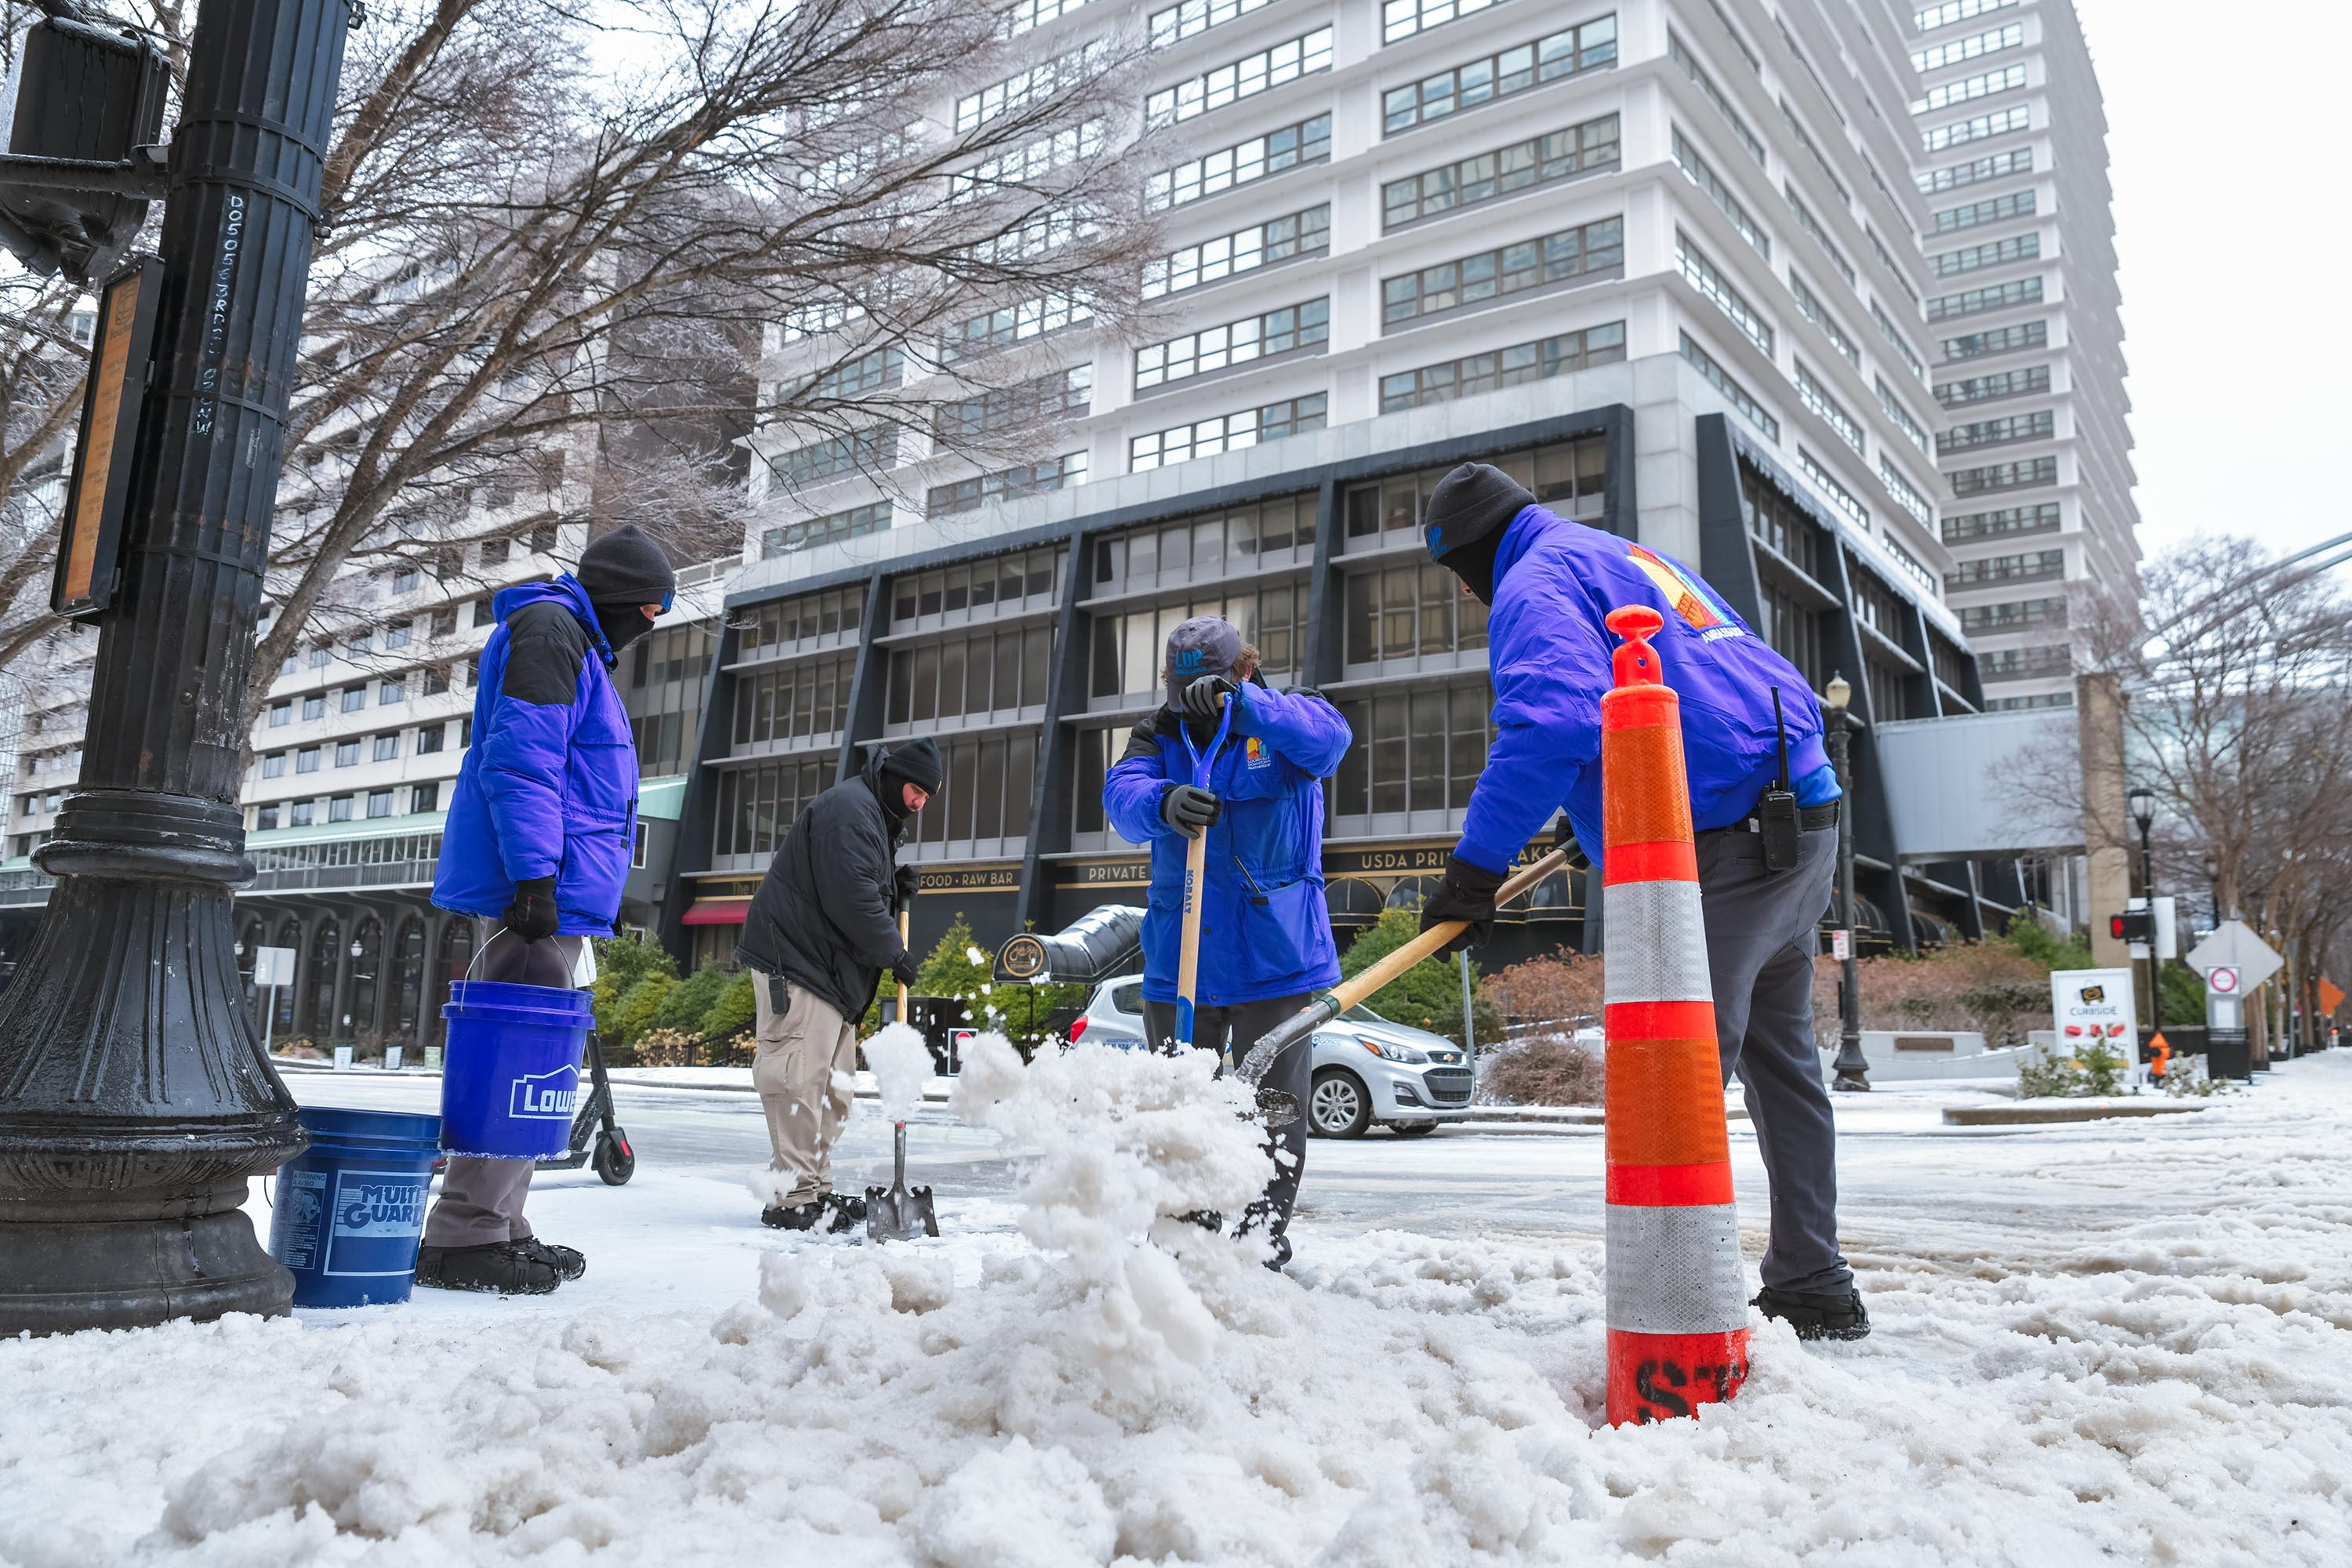 City workers use shovels to chip away at ice on the sidewalk in downtown Louisville on February 11, 2021 in Louisville, Kentucky.